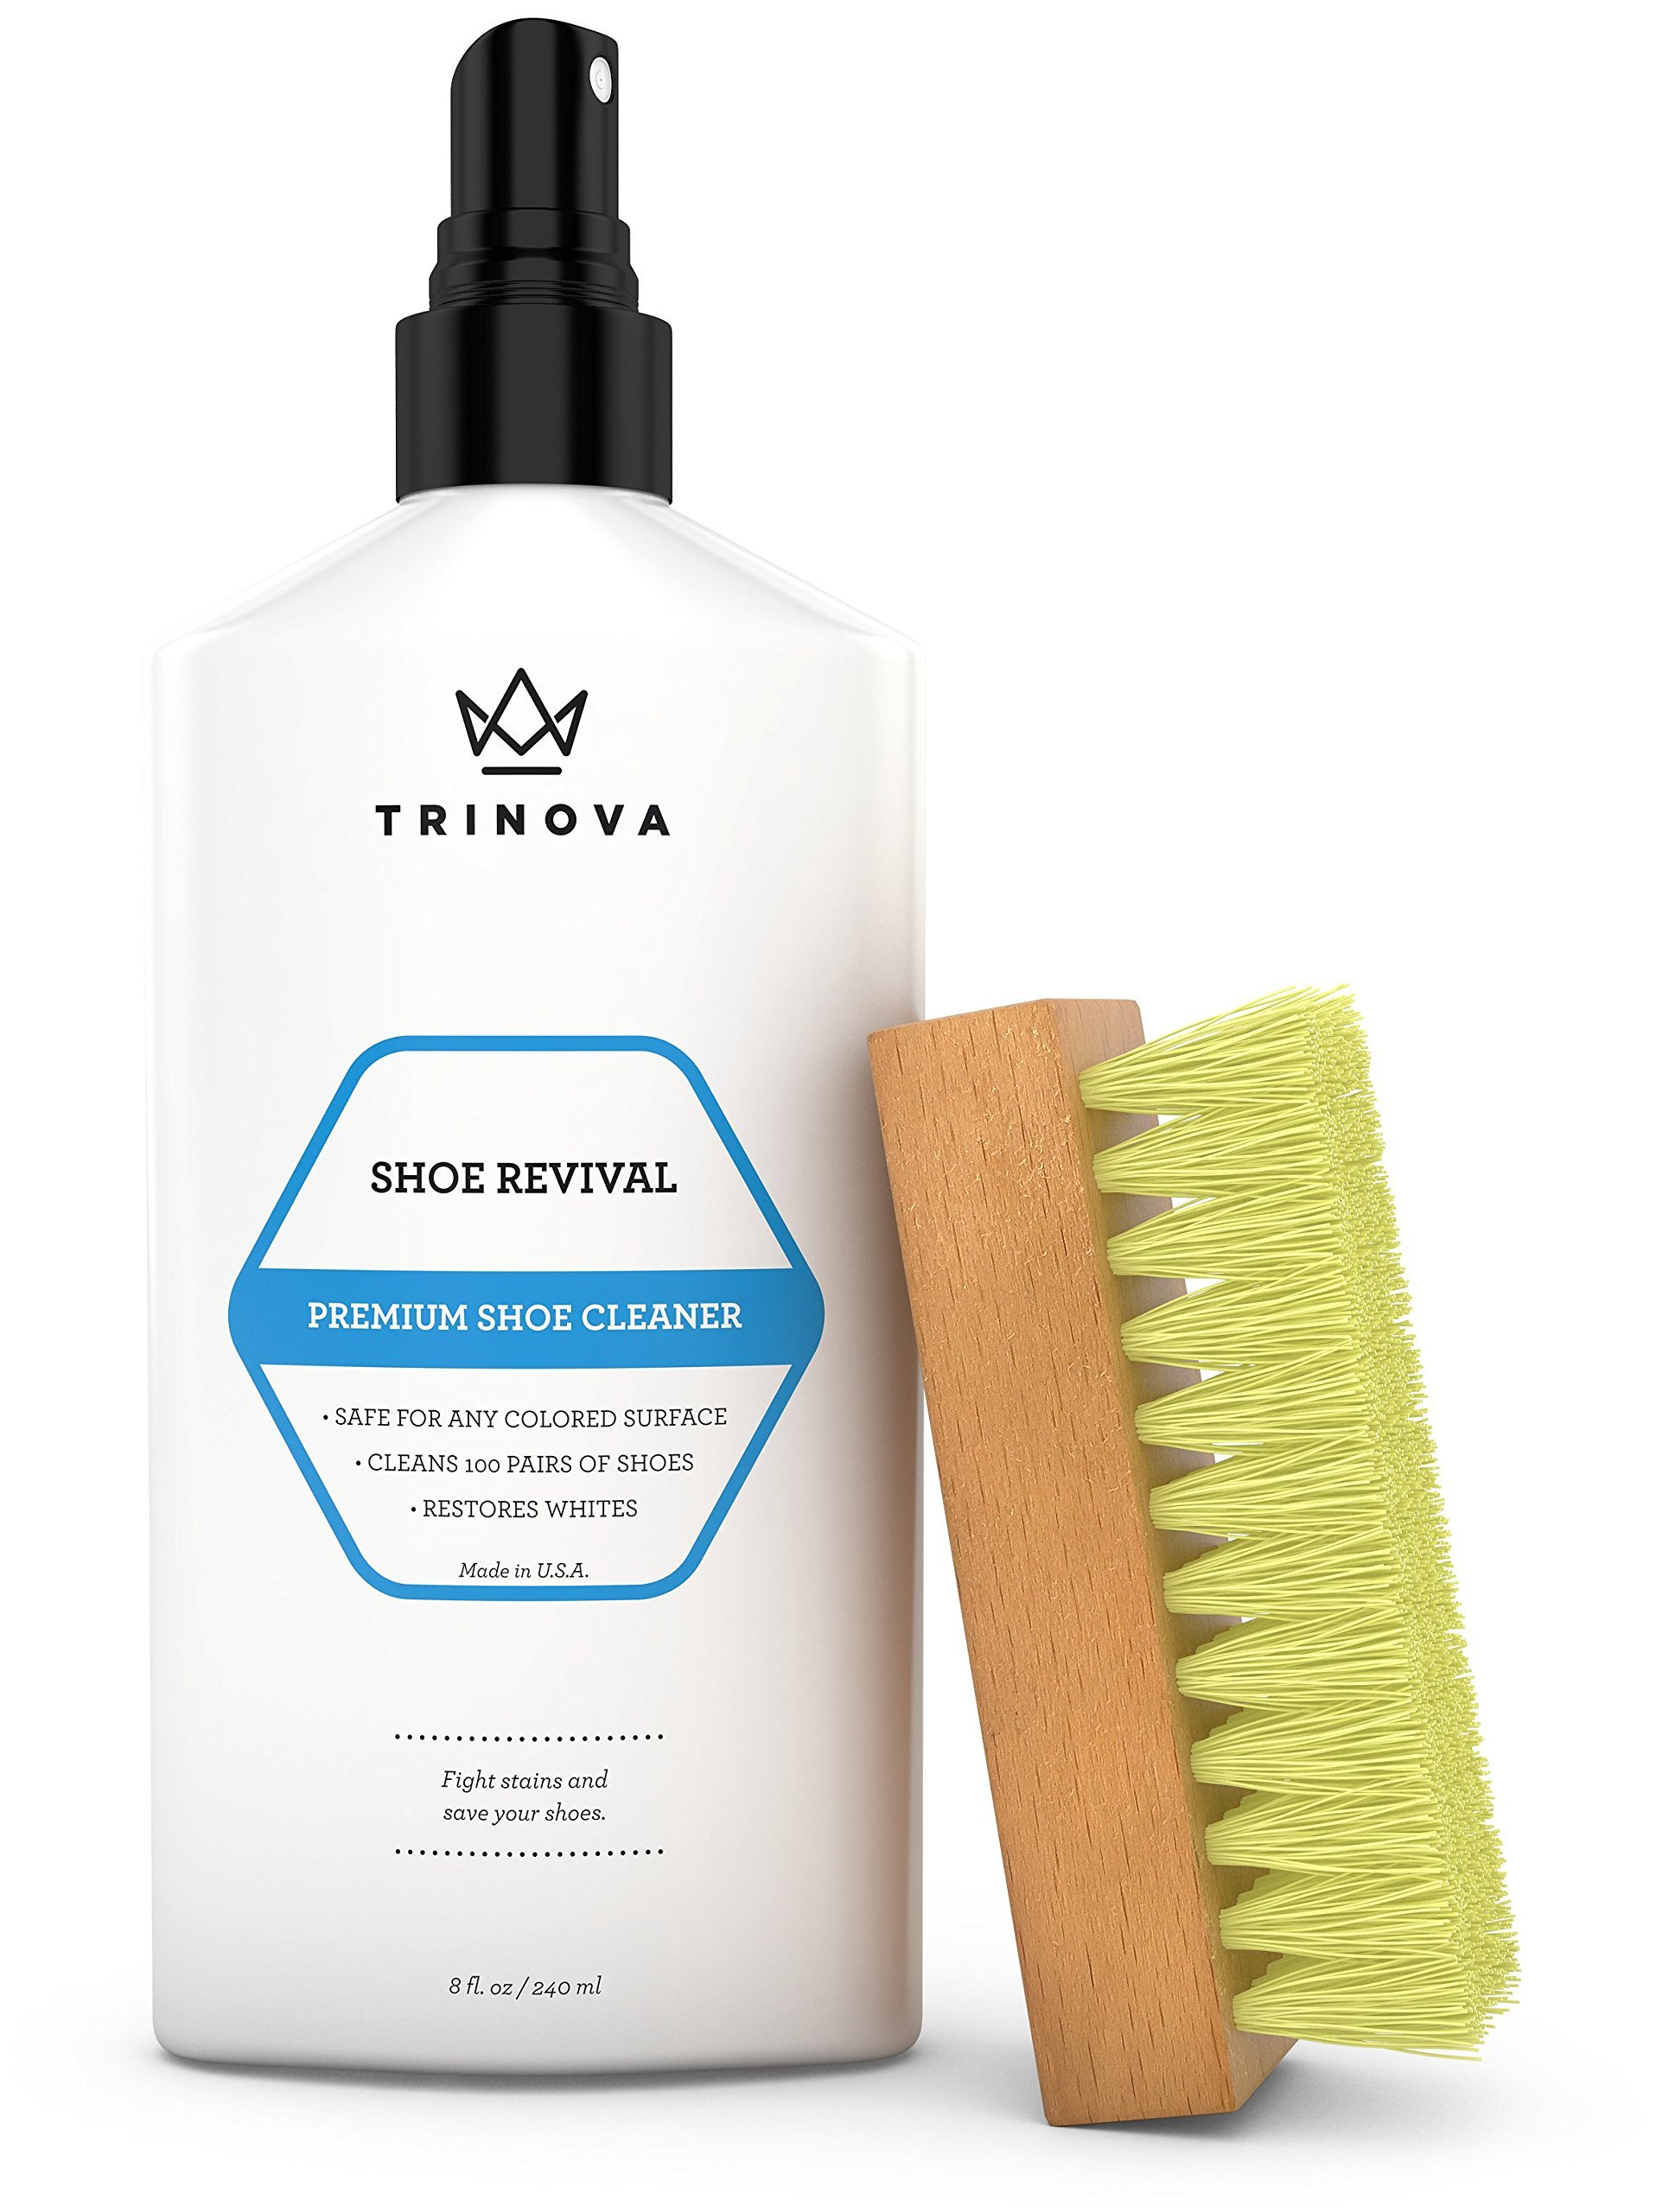 TriNova Shoe Cleaner Kit - Tennis, Sneaker, Boots, More - Premiun Cleaning to Remove Dirt and Stains. Free Brush 8OZ